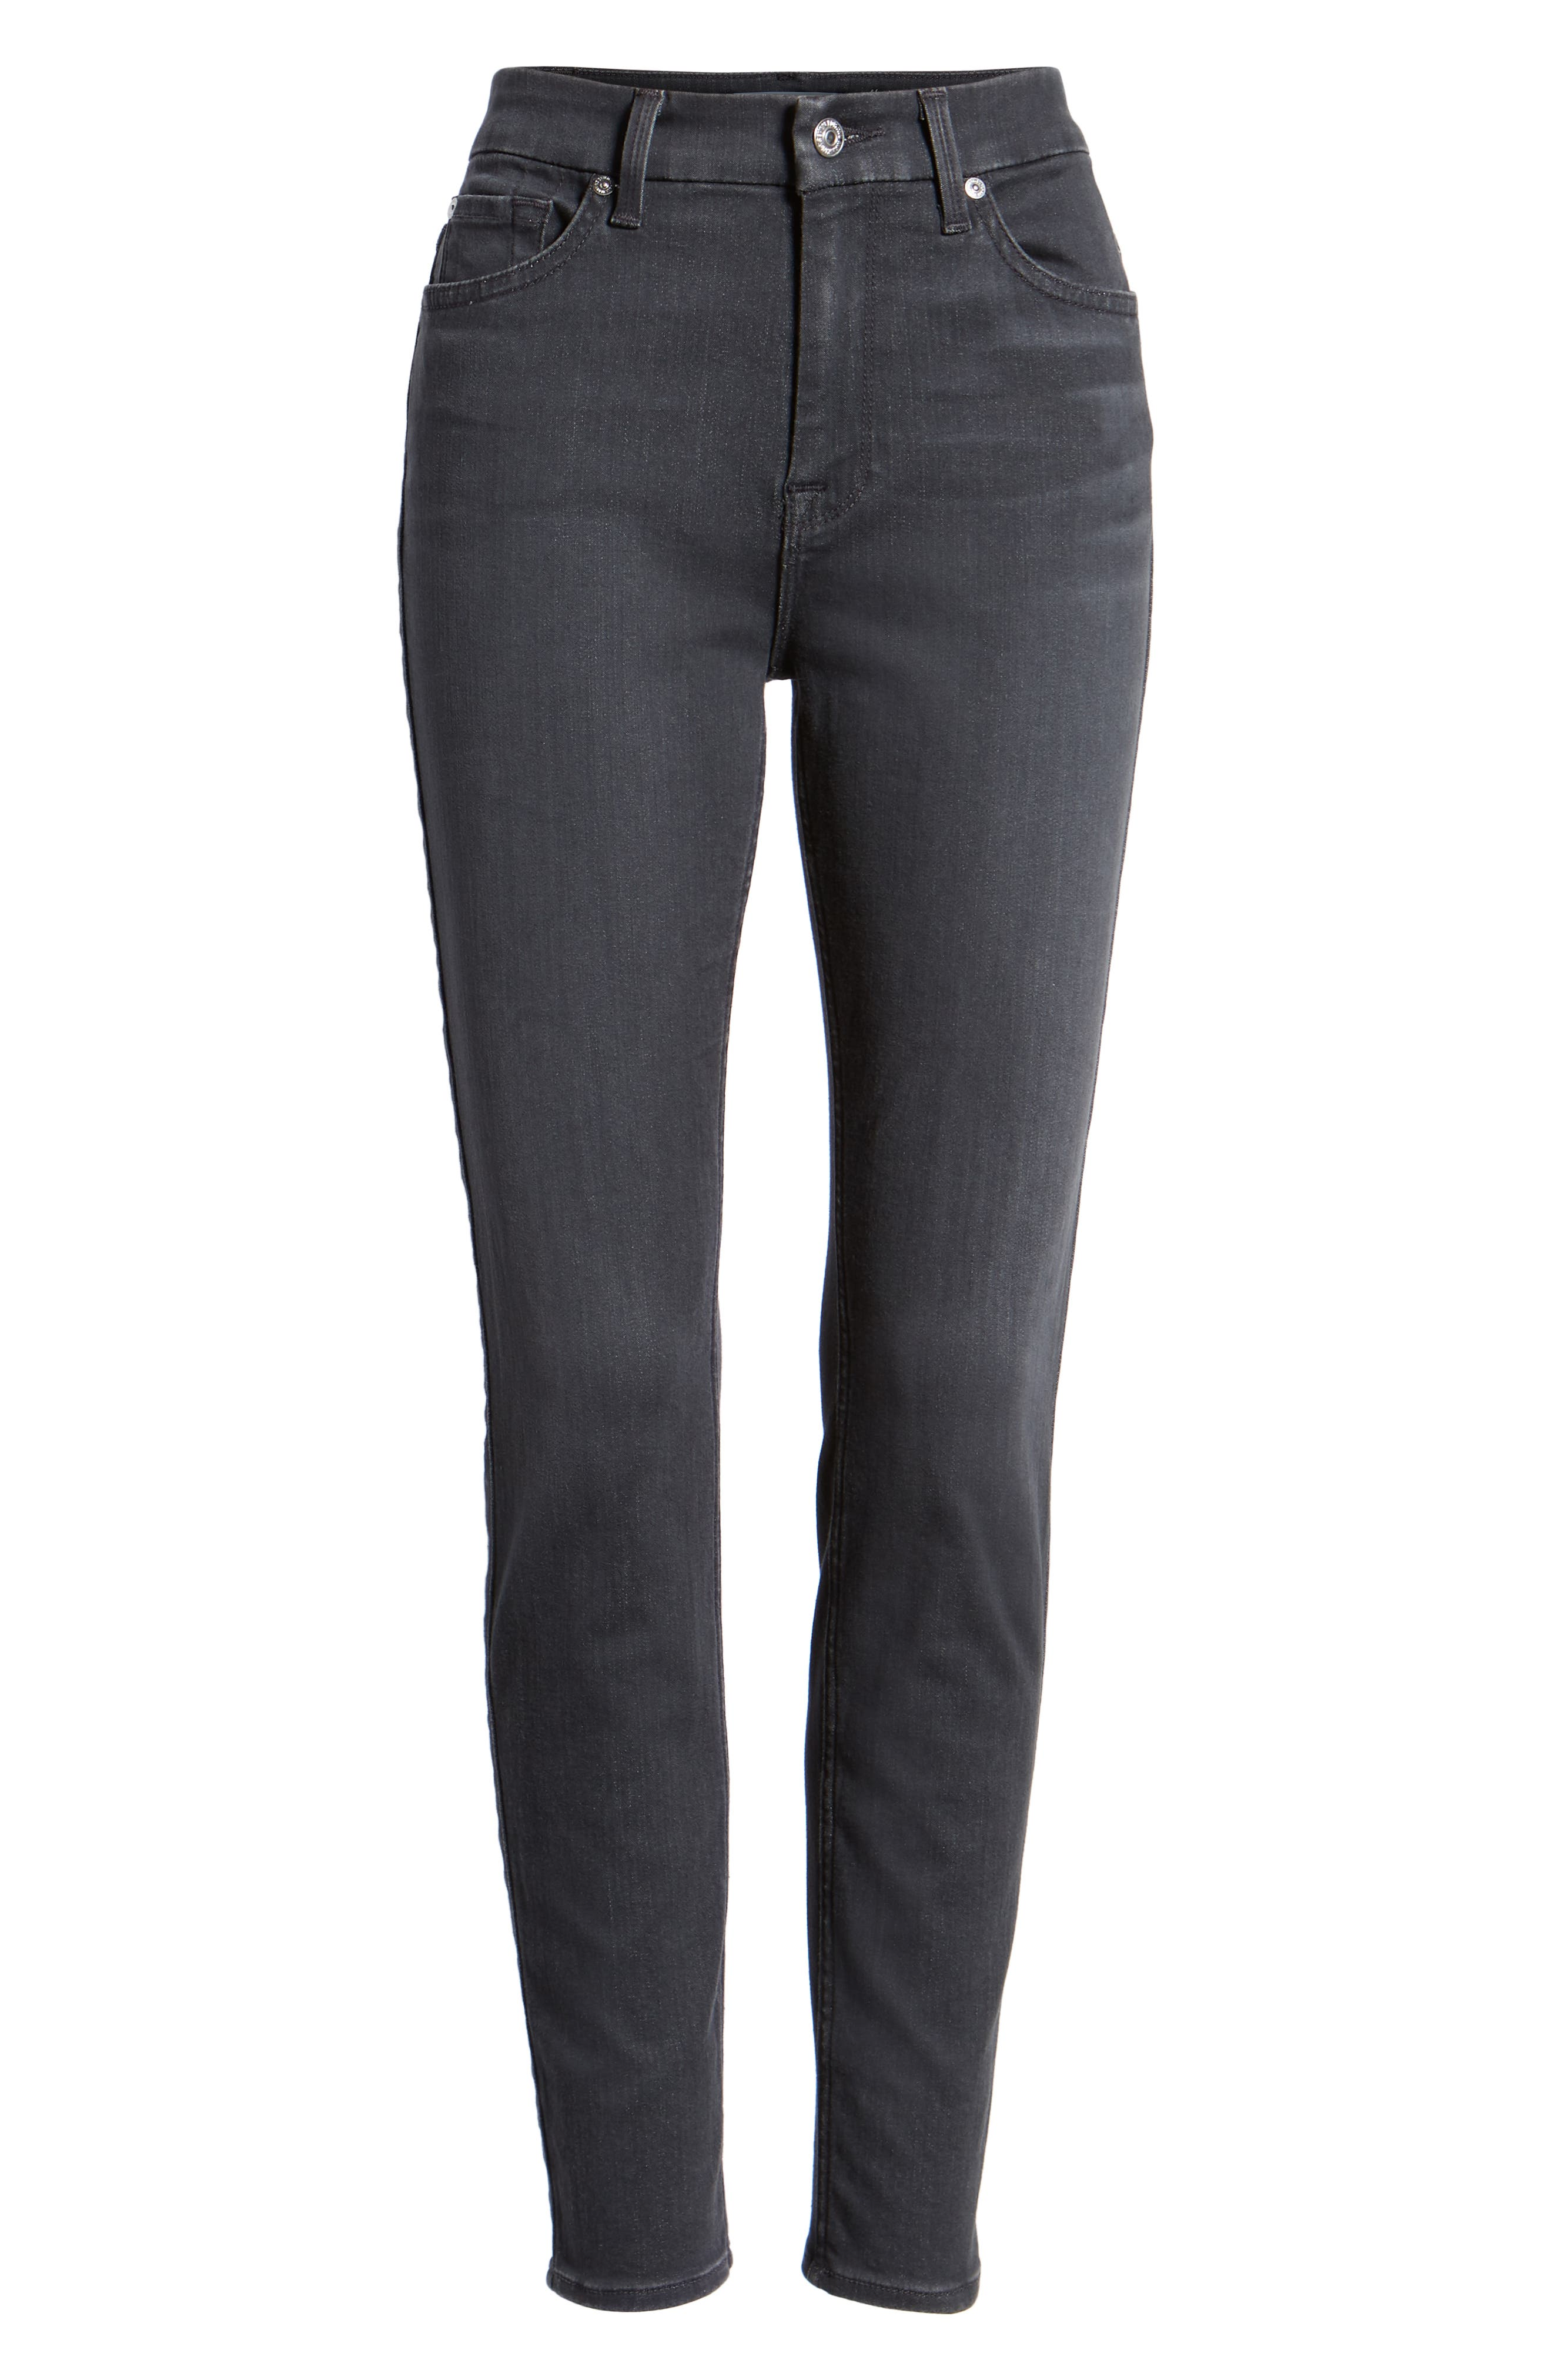 High Waist Ankle Skinny Jeans,                             Alternate thumbnail 7, color,                             GREY